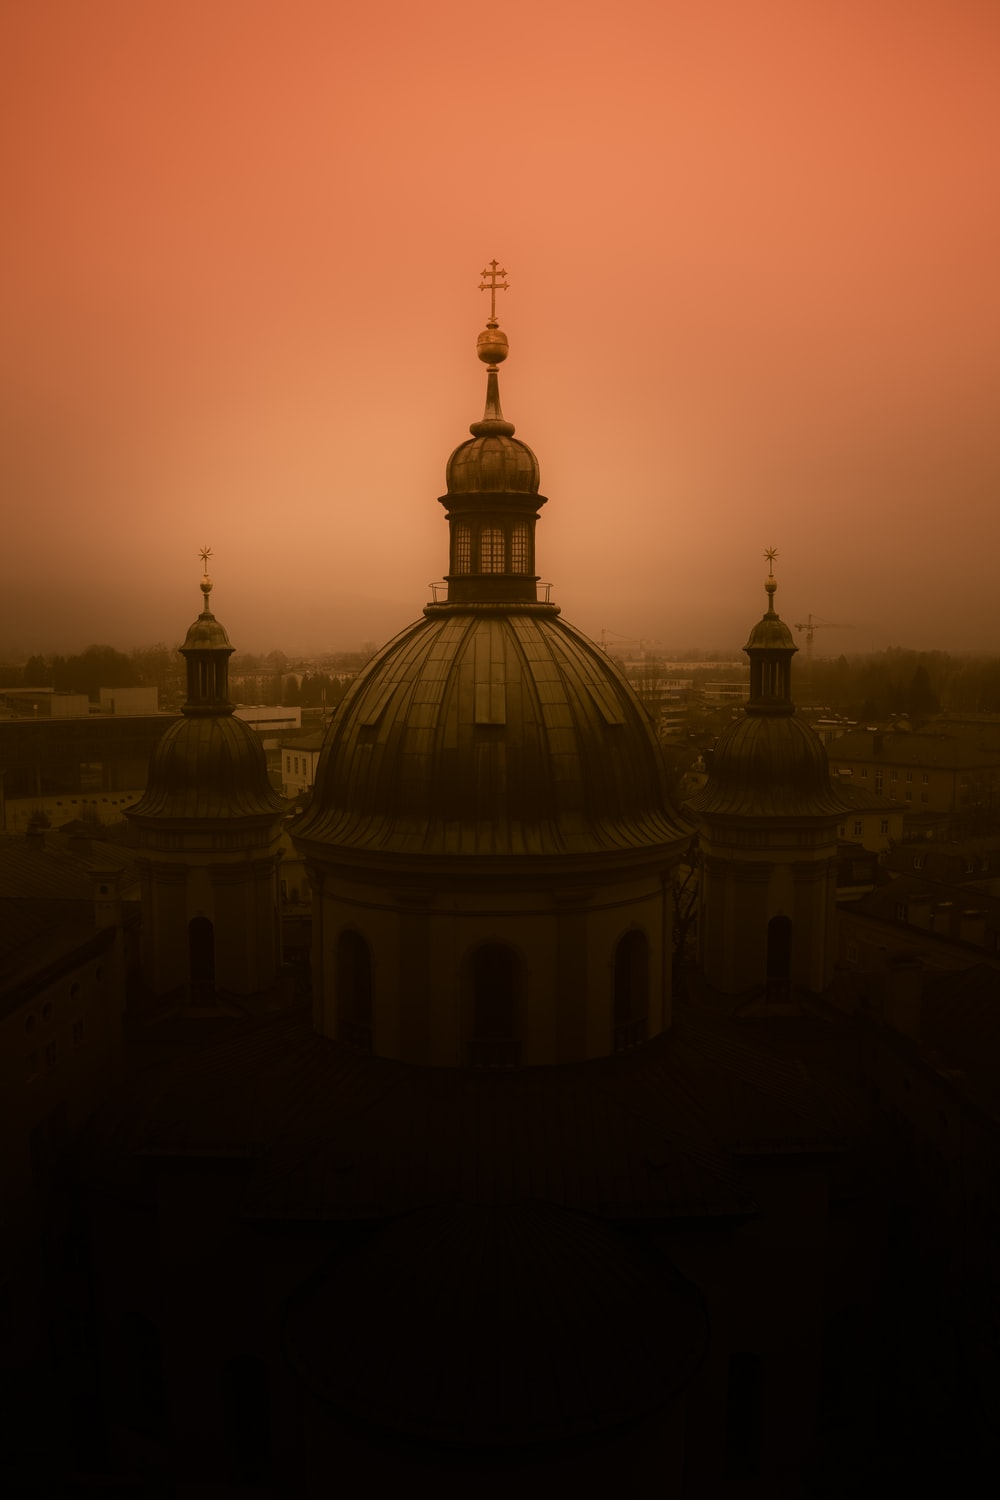 cathedral under red sky